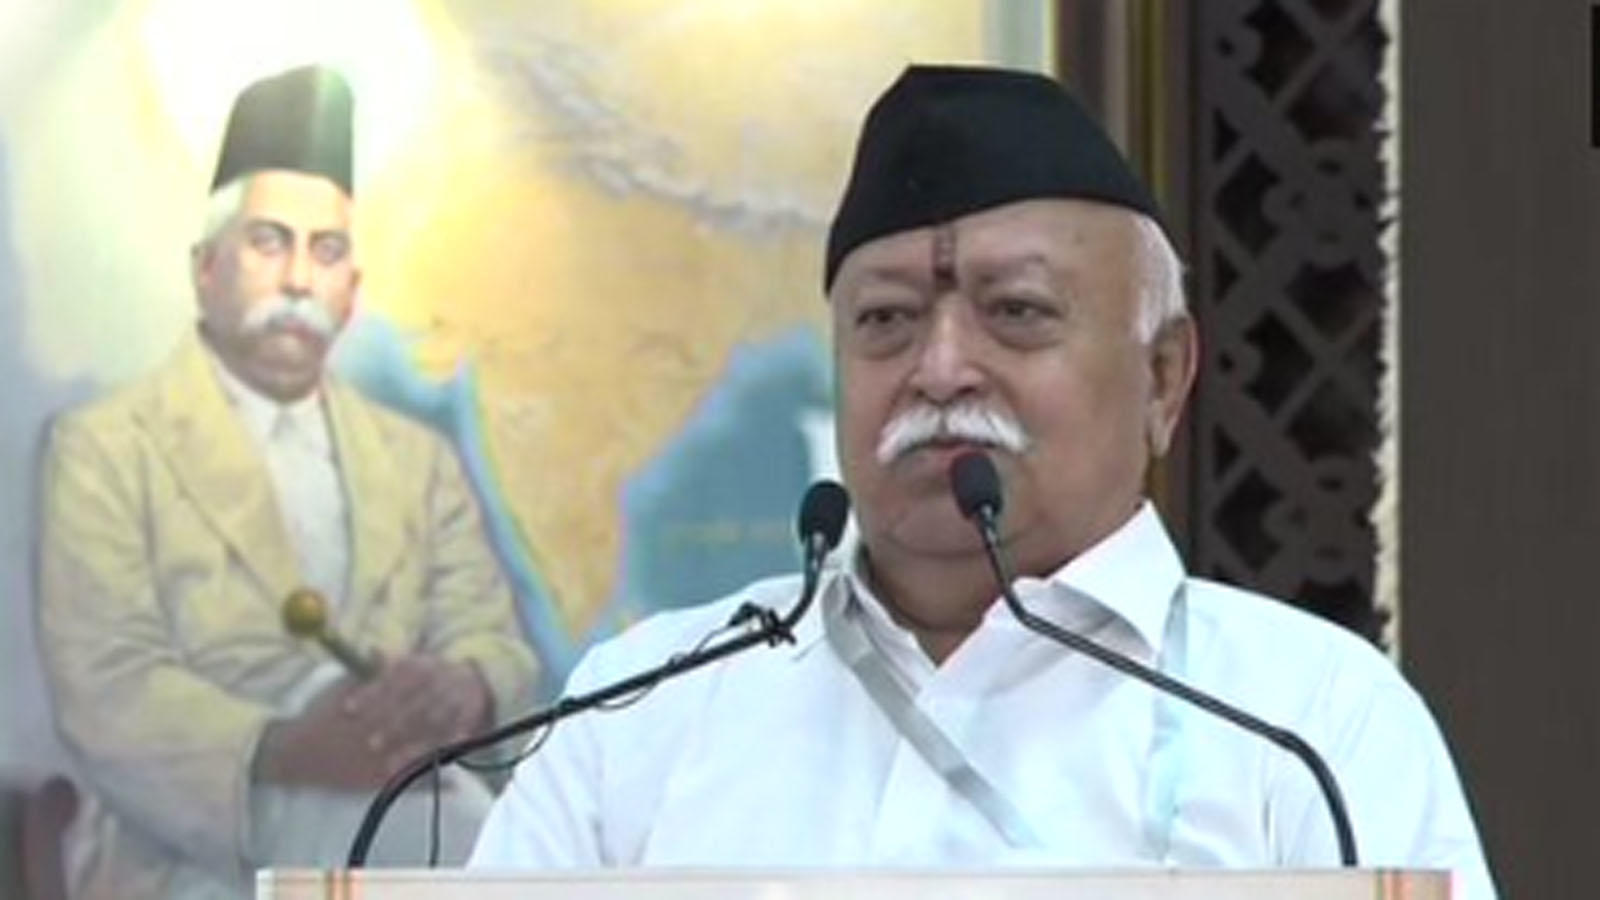 indias-defence-forces-citizens-stood-firmly-in-front-of-chinas-attack-rss-chief-mohan-bhagwat